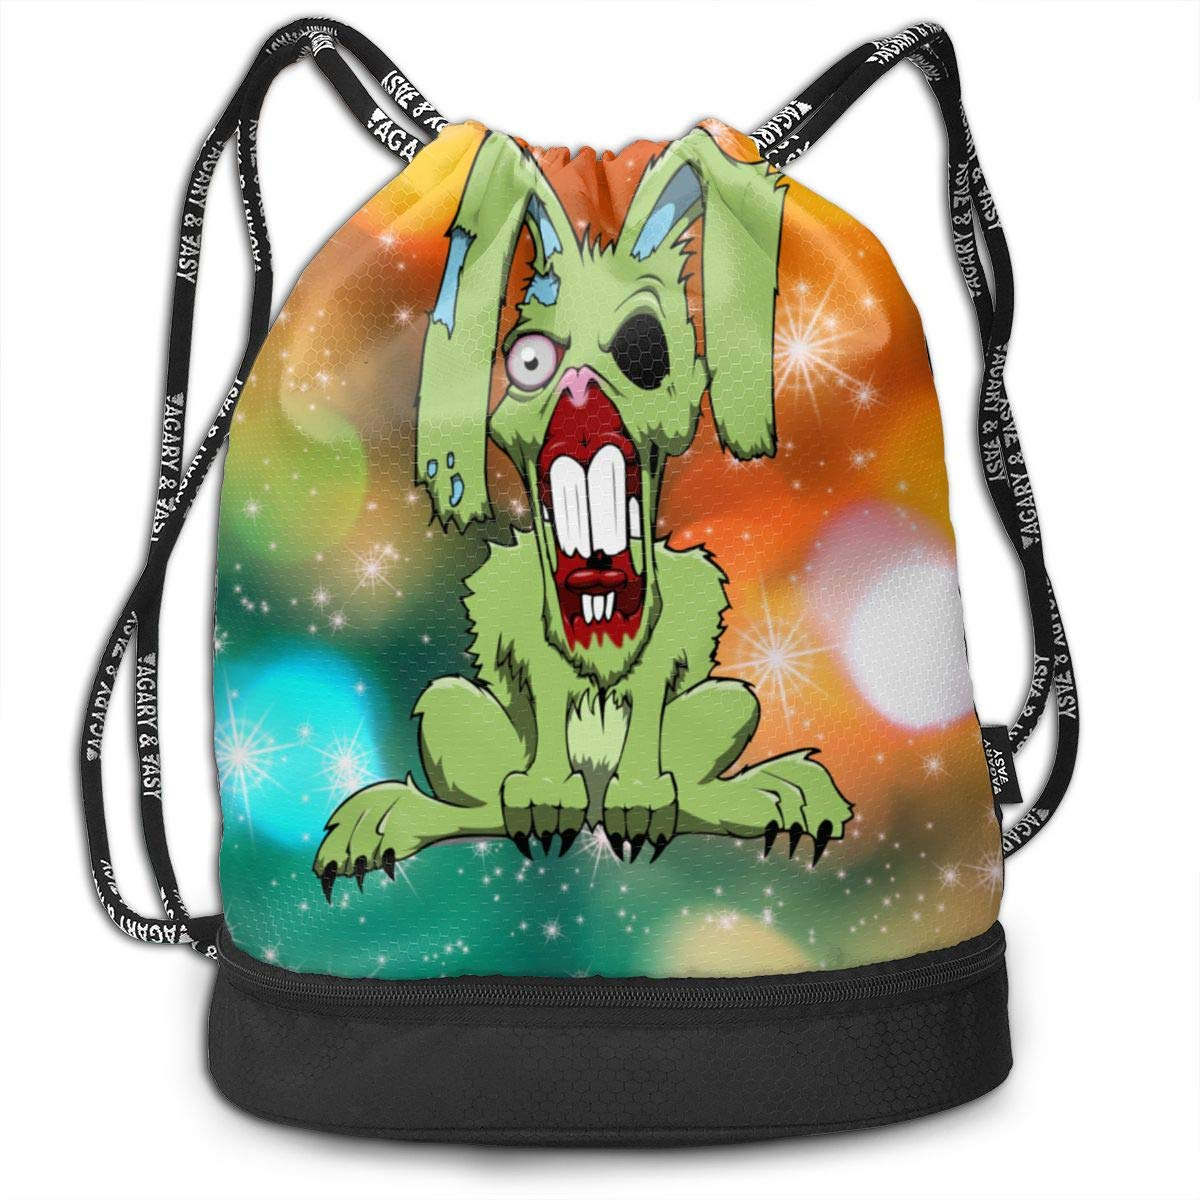 Fashion Outdoor Zipper Drawstring Bag Zombie Bunny Printed Bundle Backpack for Men Women Unisex Multi-Function Backpack